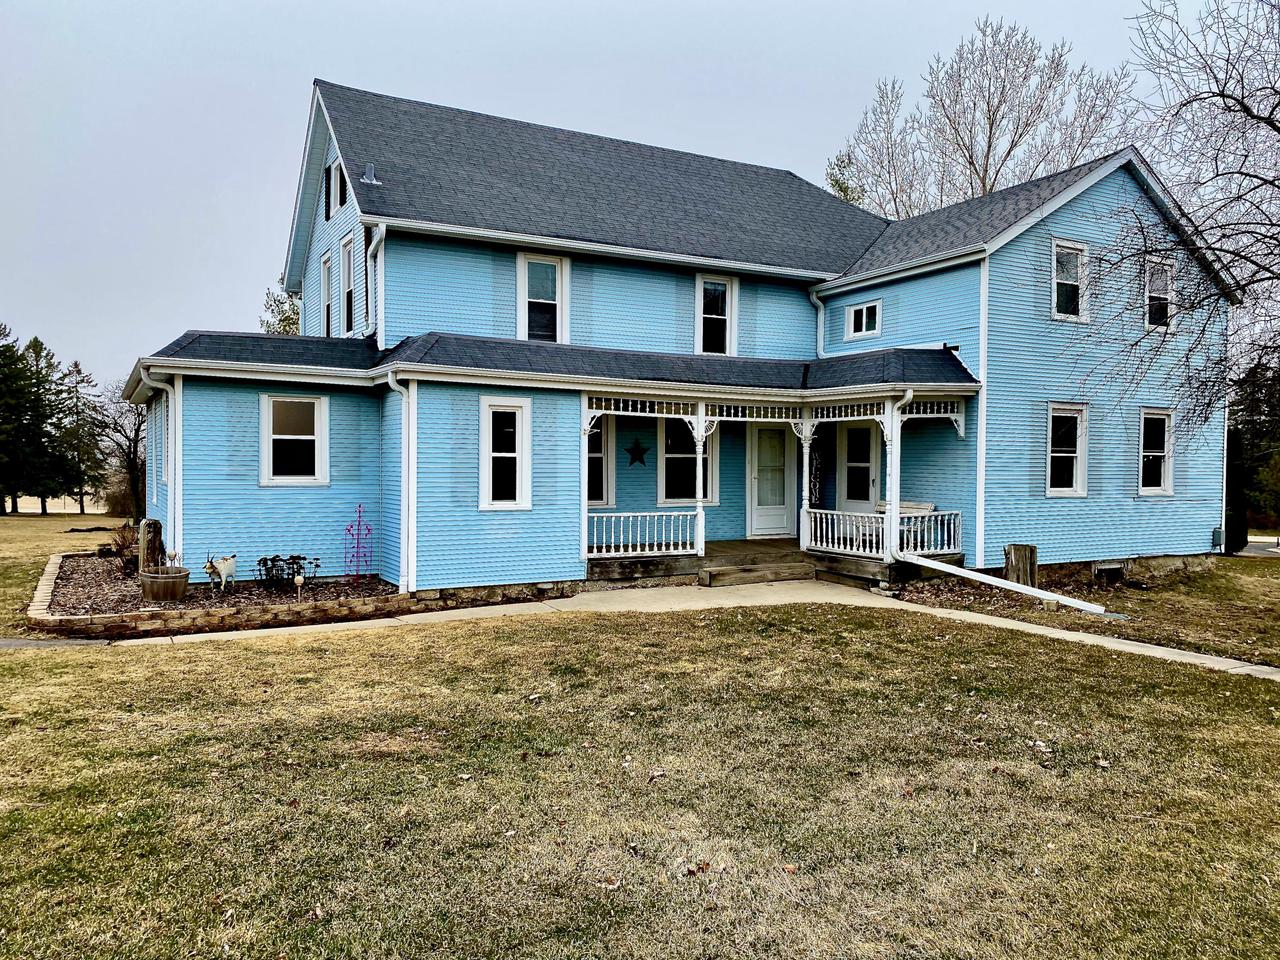 Welcome home to this gorgeous farmhouse in the perfect location!  This home has been completely remodeled throughout!  New luxury vinyl flooring and new carpet throughout main level!  Snuggle up next to the pellet stove in your extra-large living room with so much character!  Enjoy your stunning farmhouse kitchen with quartz countertops, breakfast bar that seats three, and huge walk-in pantry with rustic sliding door!  Full bathroom off kitchen has been beautifully updated with subway tile in the shower!  First-floor laundry/mudroom with full closet!  Upstairs you'll find your huge master bedroom as well as two additional bedrooms and an absolutely massive full bathroom!  Two acres of land mean you'll have room to roam!  Brand new mound system to be installed by seller prior to closing!